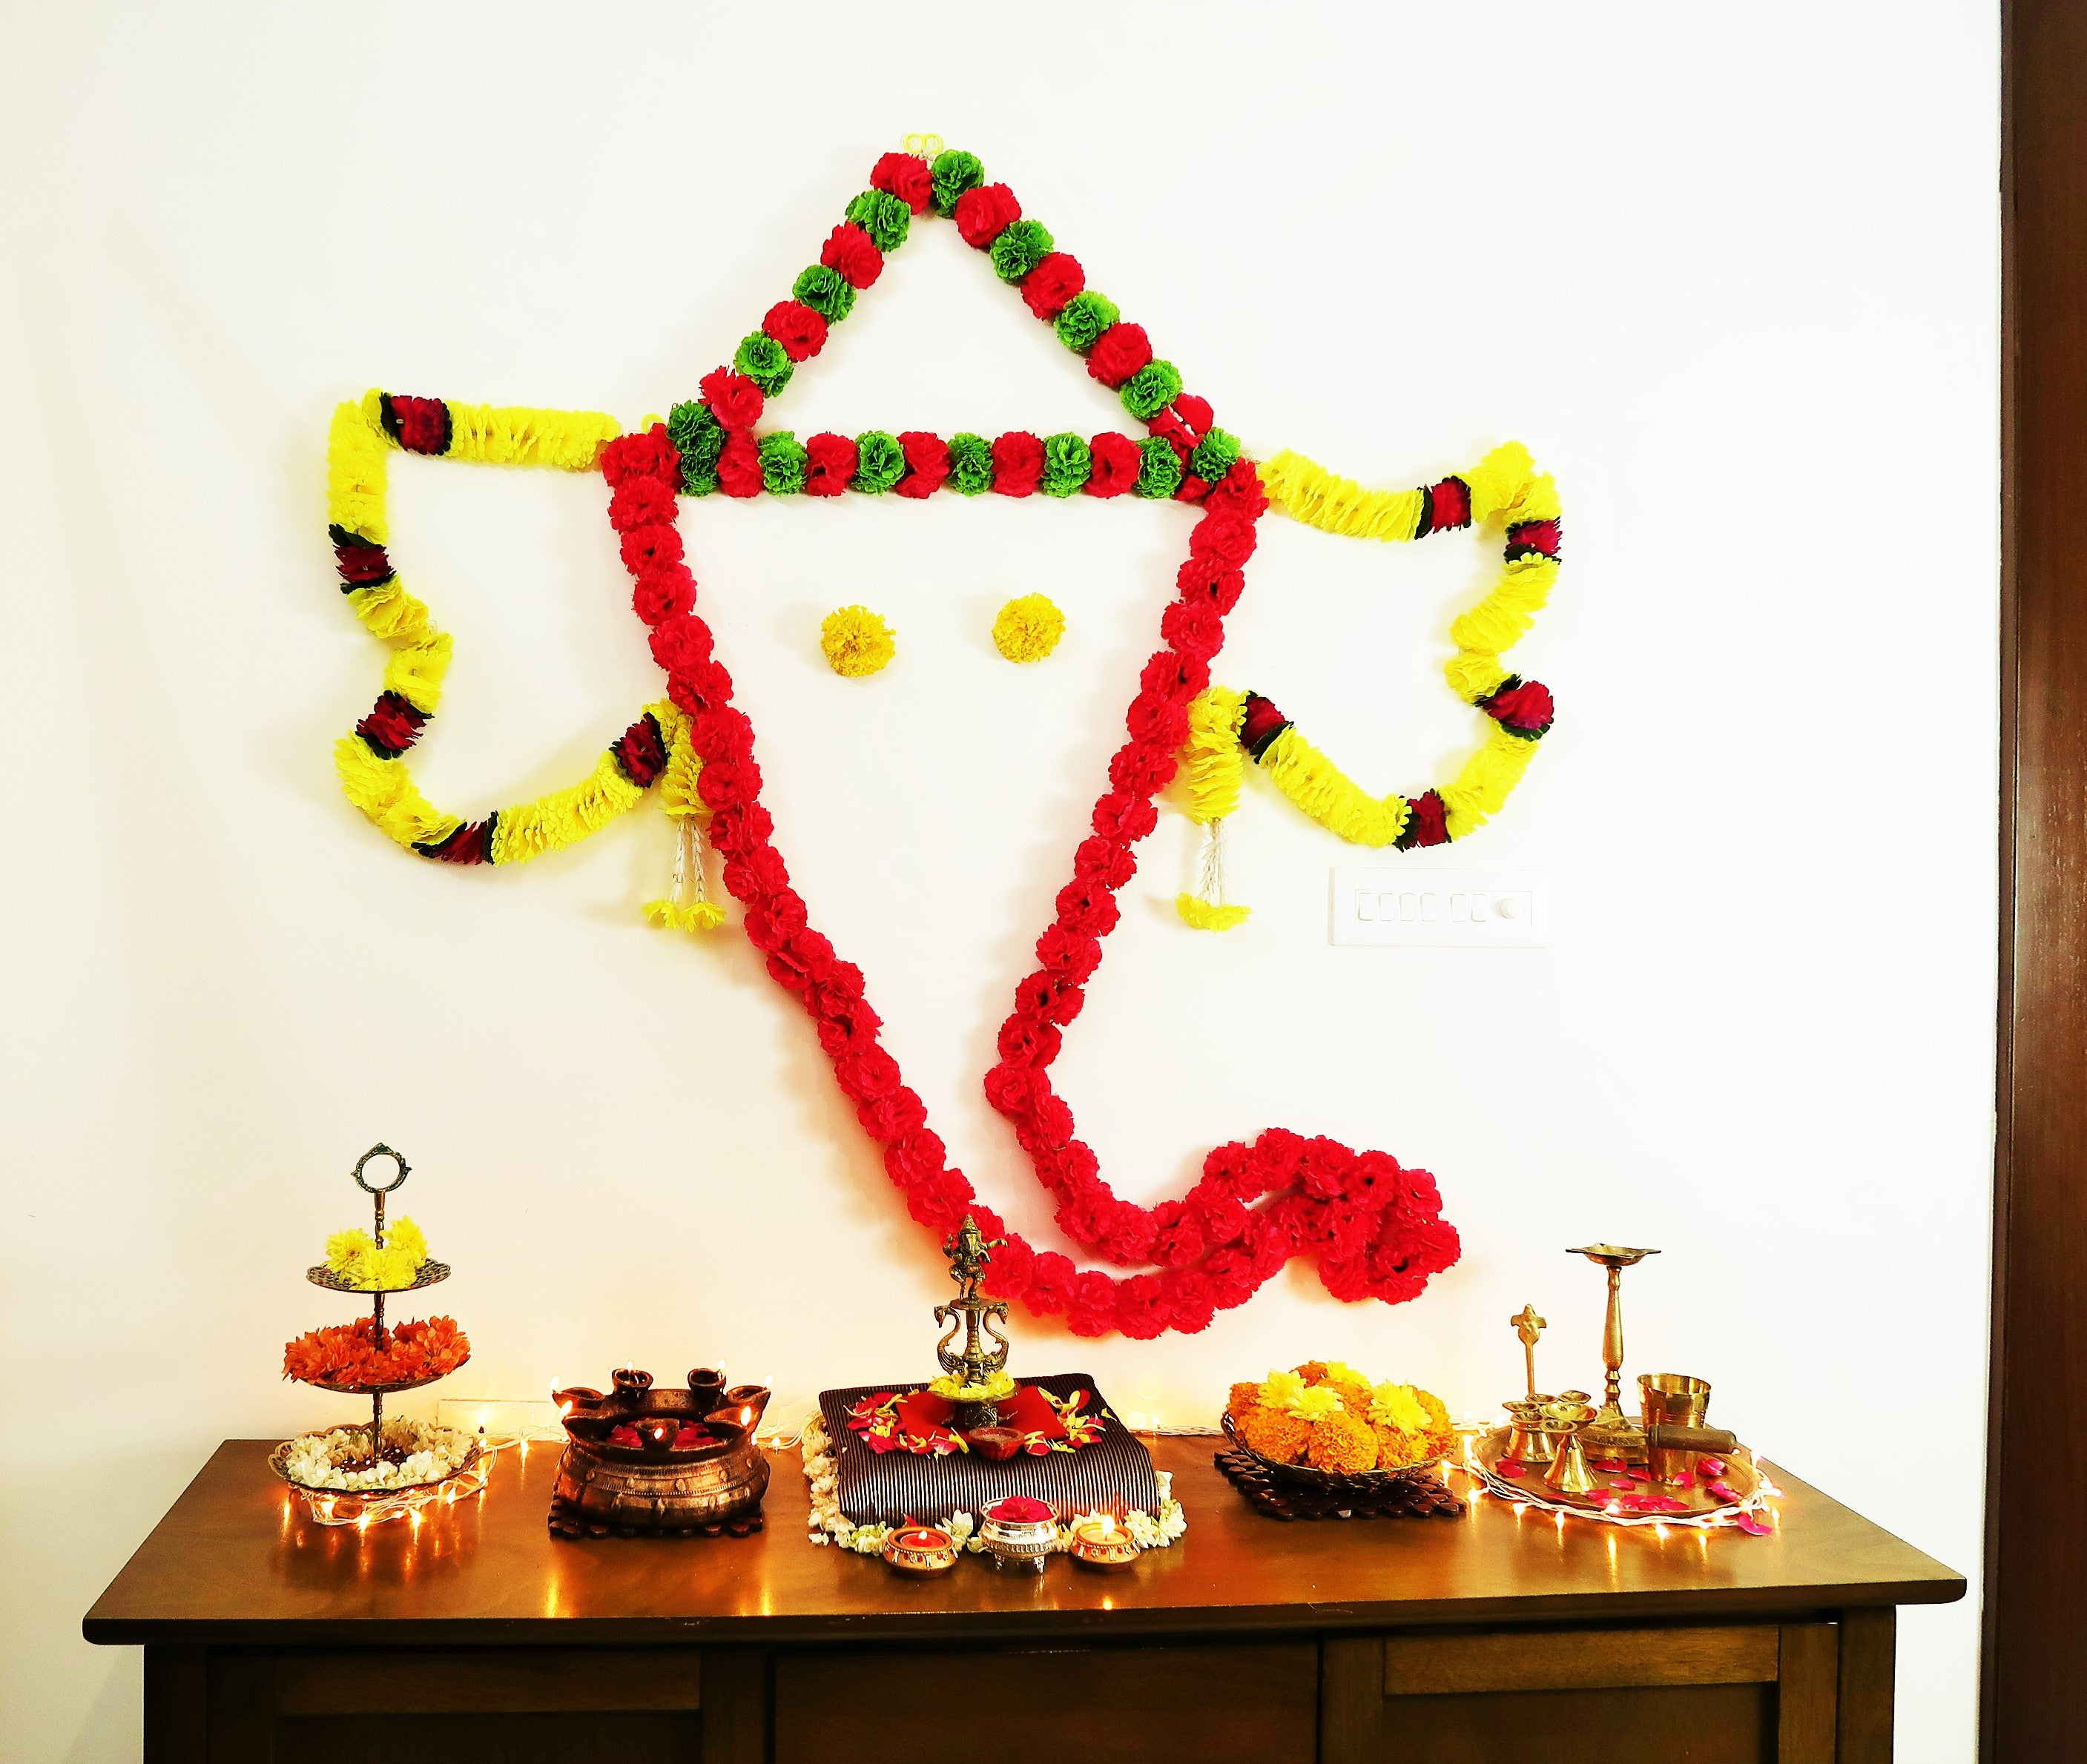 Ganpati Decoration Ideas For Home- DIY Ganesha Wall Rangoli using Command Hooks!